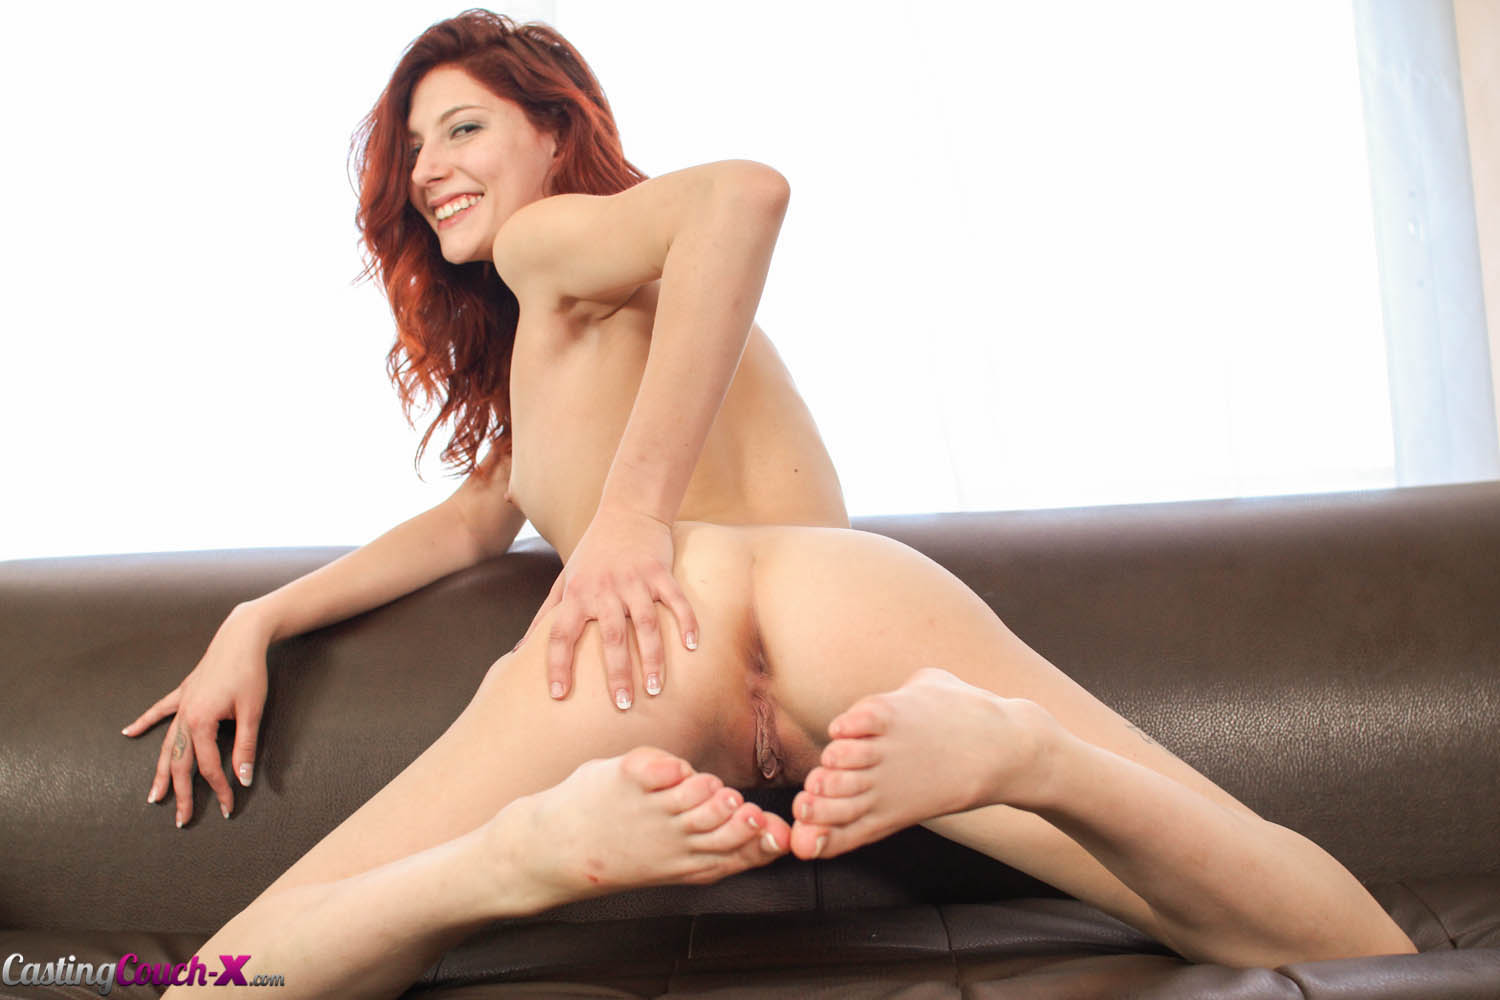 Pictures of ashlyn - CastingCouch-X is Full of Fresh New ...